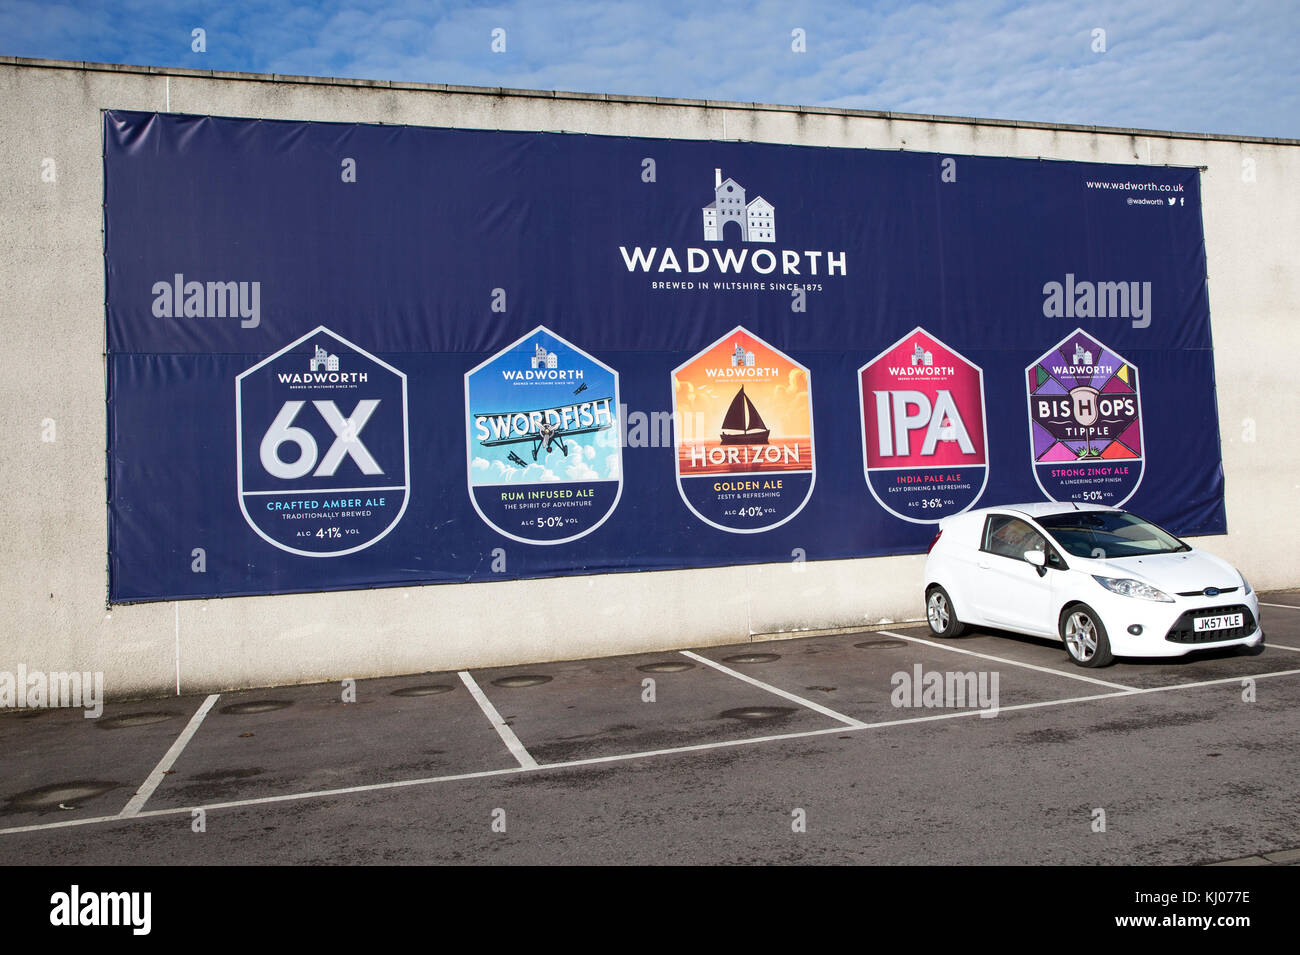 Billboard traditionally brewed beer advertising poster at Wadworth brewery, Devizes, Wiltshire, England, UK - Stock Image